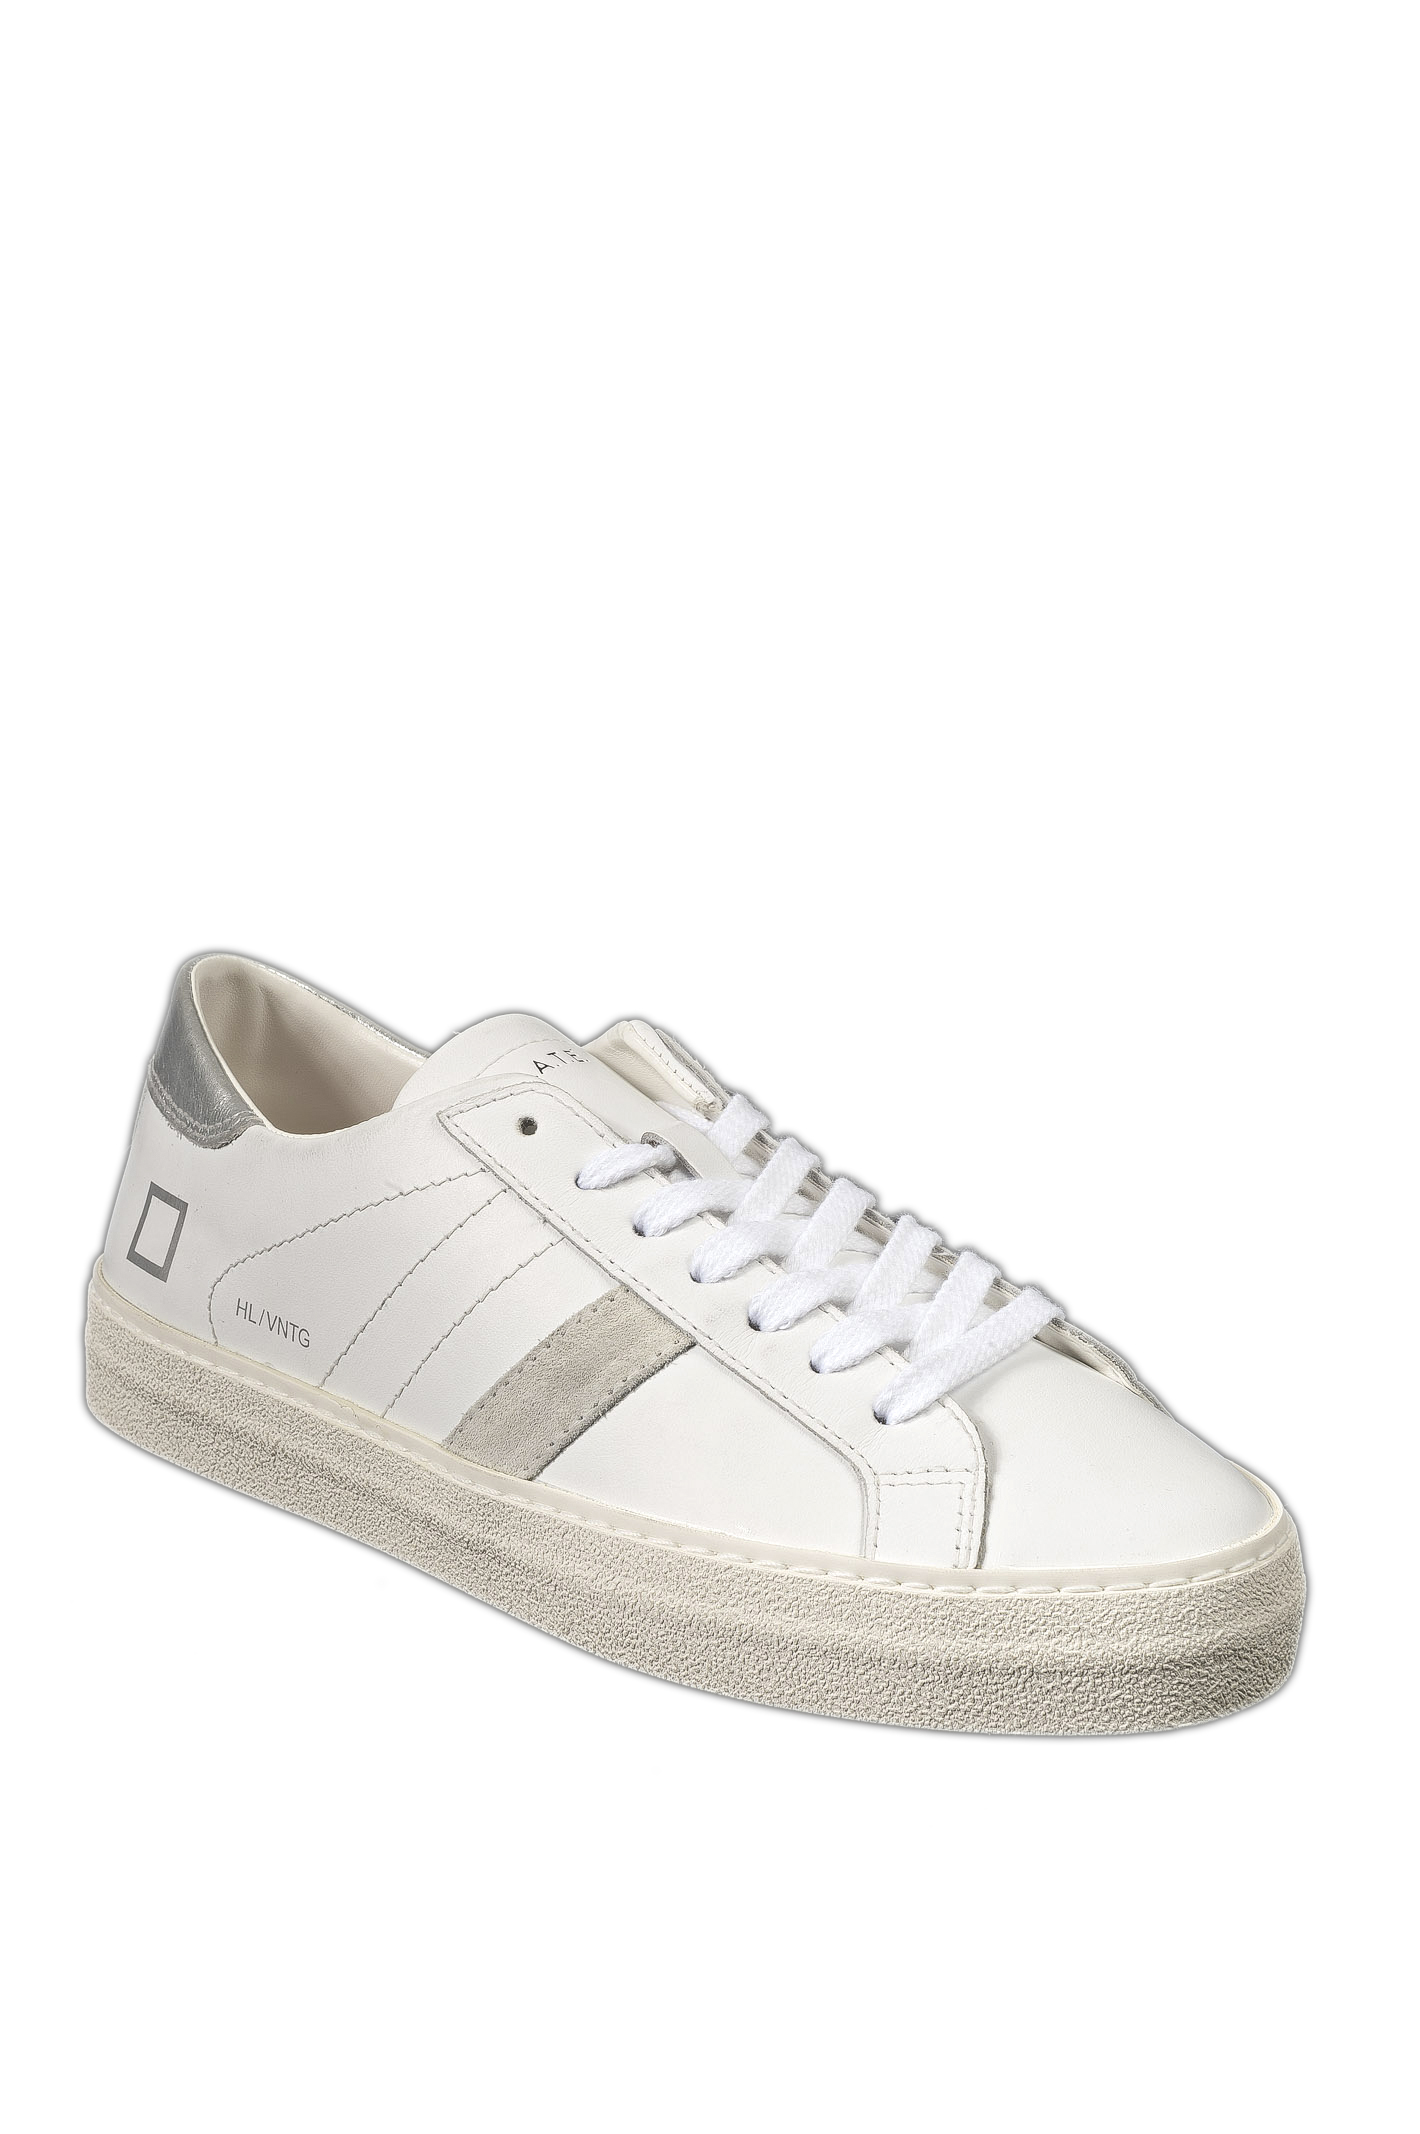 HILL LOW DCALF-WHI/SILVER